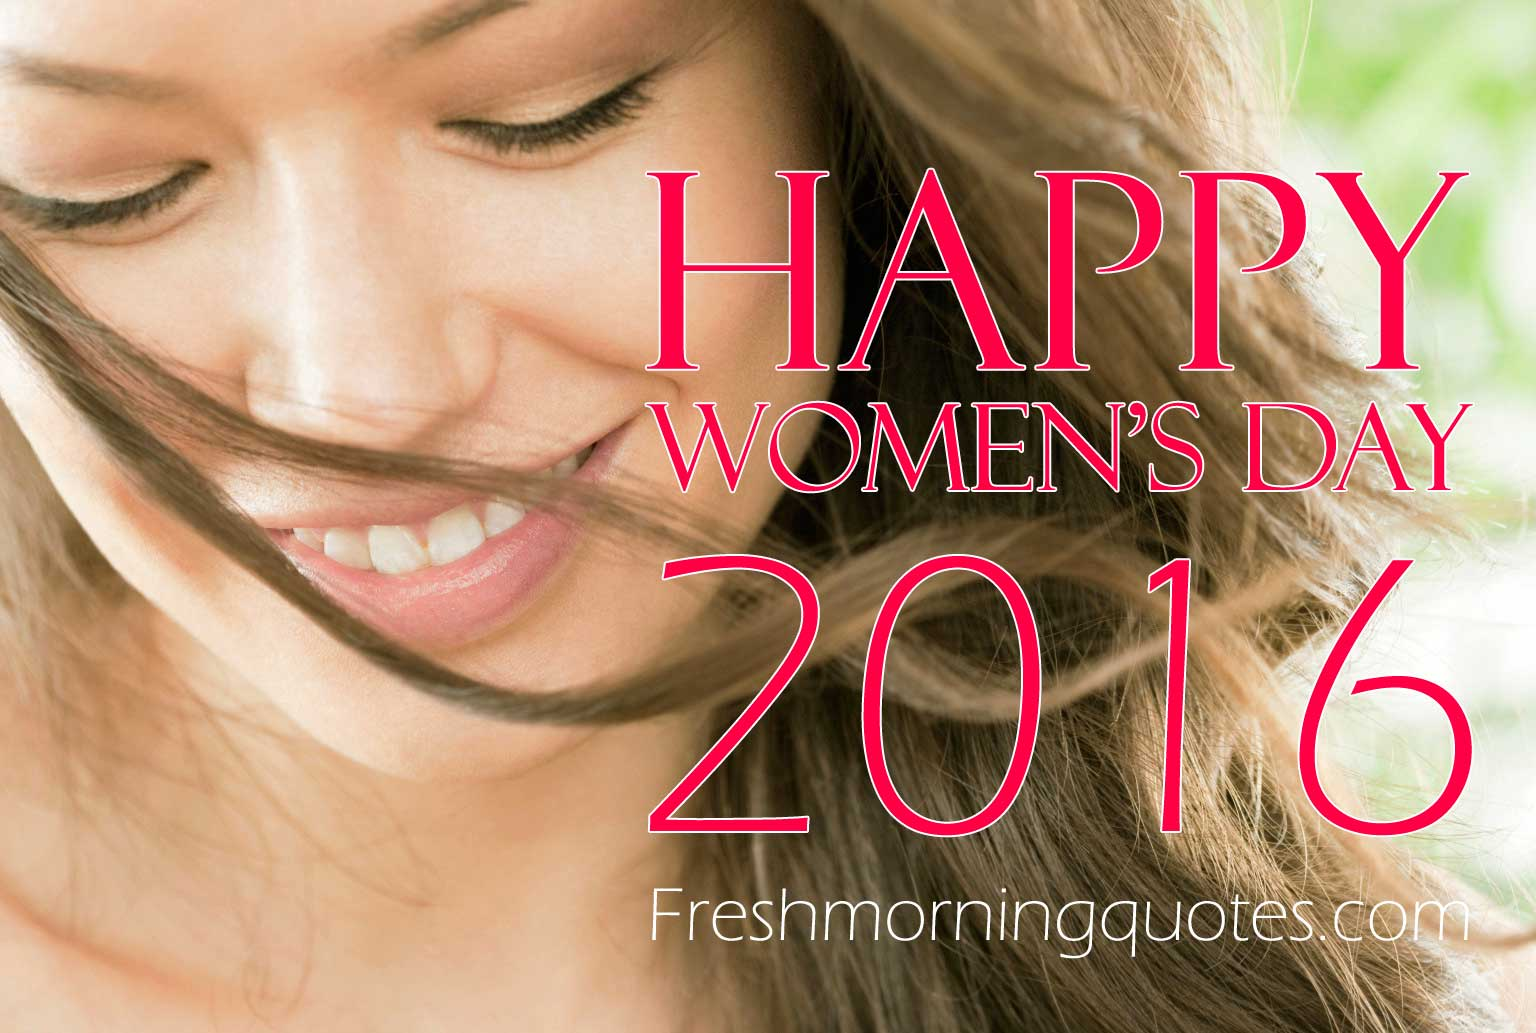 Happiness Quotes Wallpaper Iphone Happy Women S Day Images For Women S Day 2018